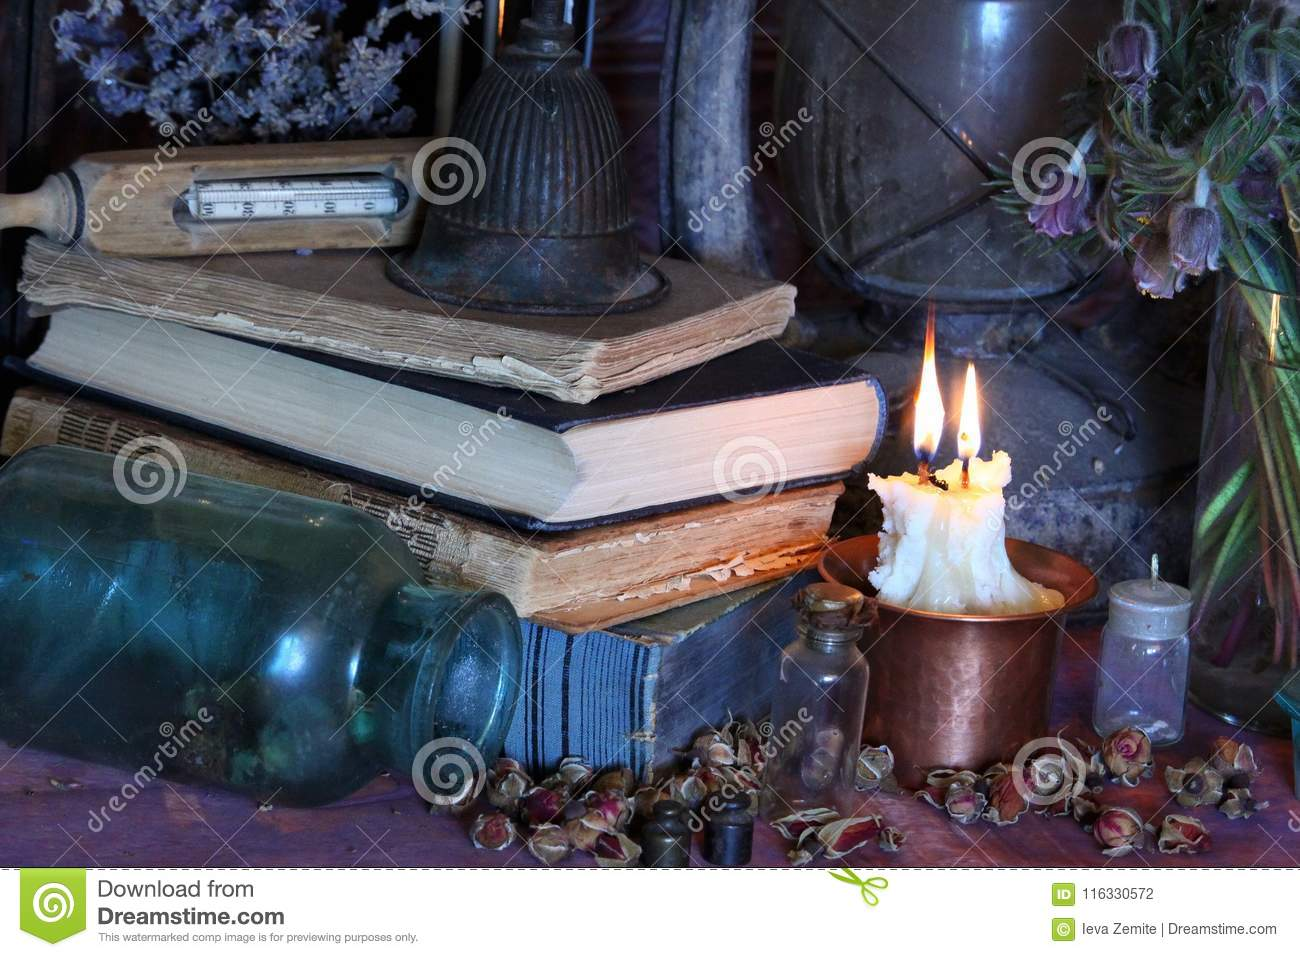 Black Magic Spells  Wiccan Spells And Herbs  Stock Photo - Image of